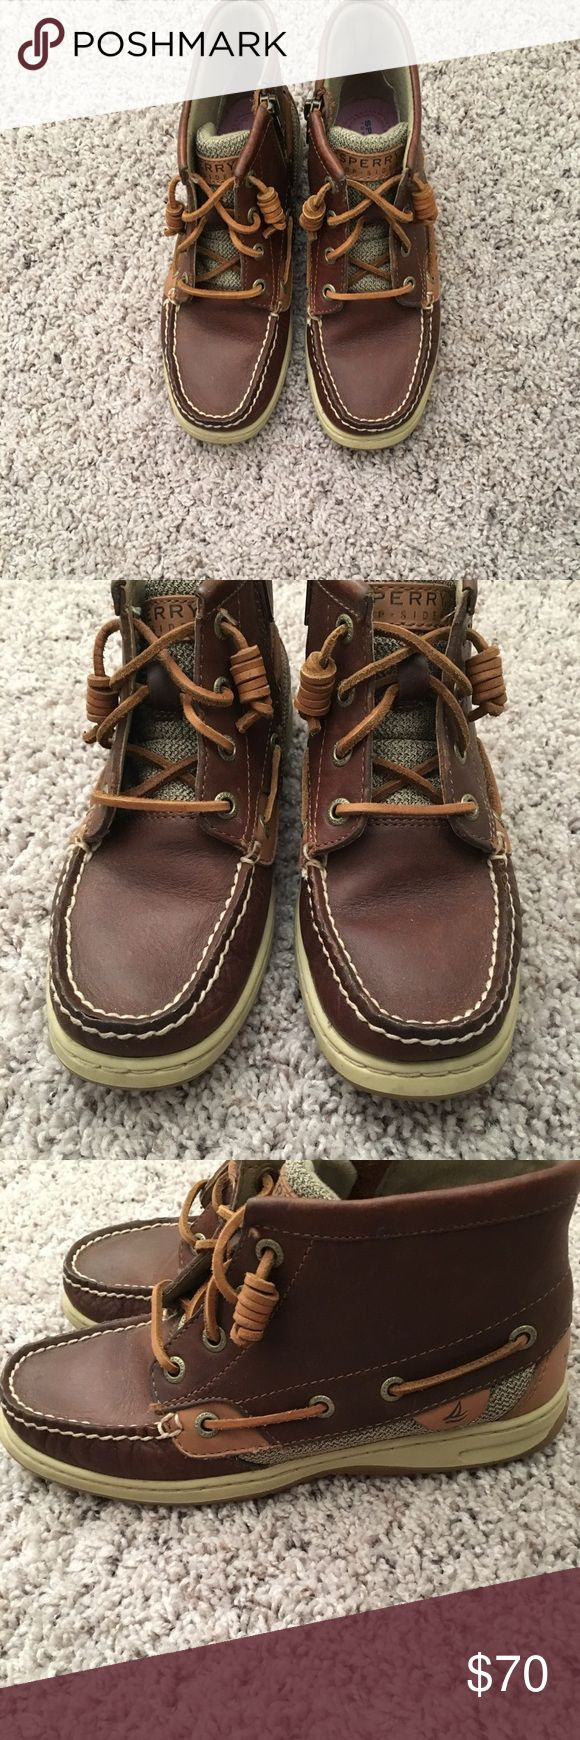 Sperry High Top Boat Shoe Boots These are comfy and barely worn a handful of times. Sperry boat shoes are good for any season! Still in very good condition. Sperry Top-Sider Shoes Ankle Boots & Booties